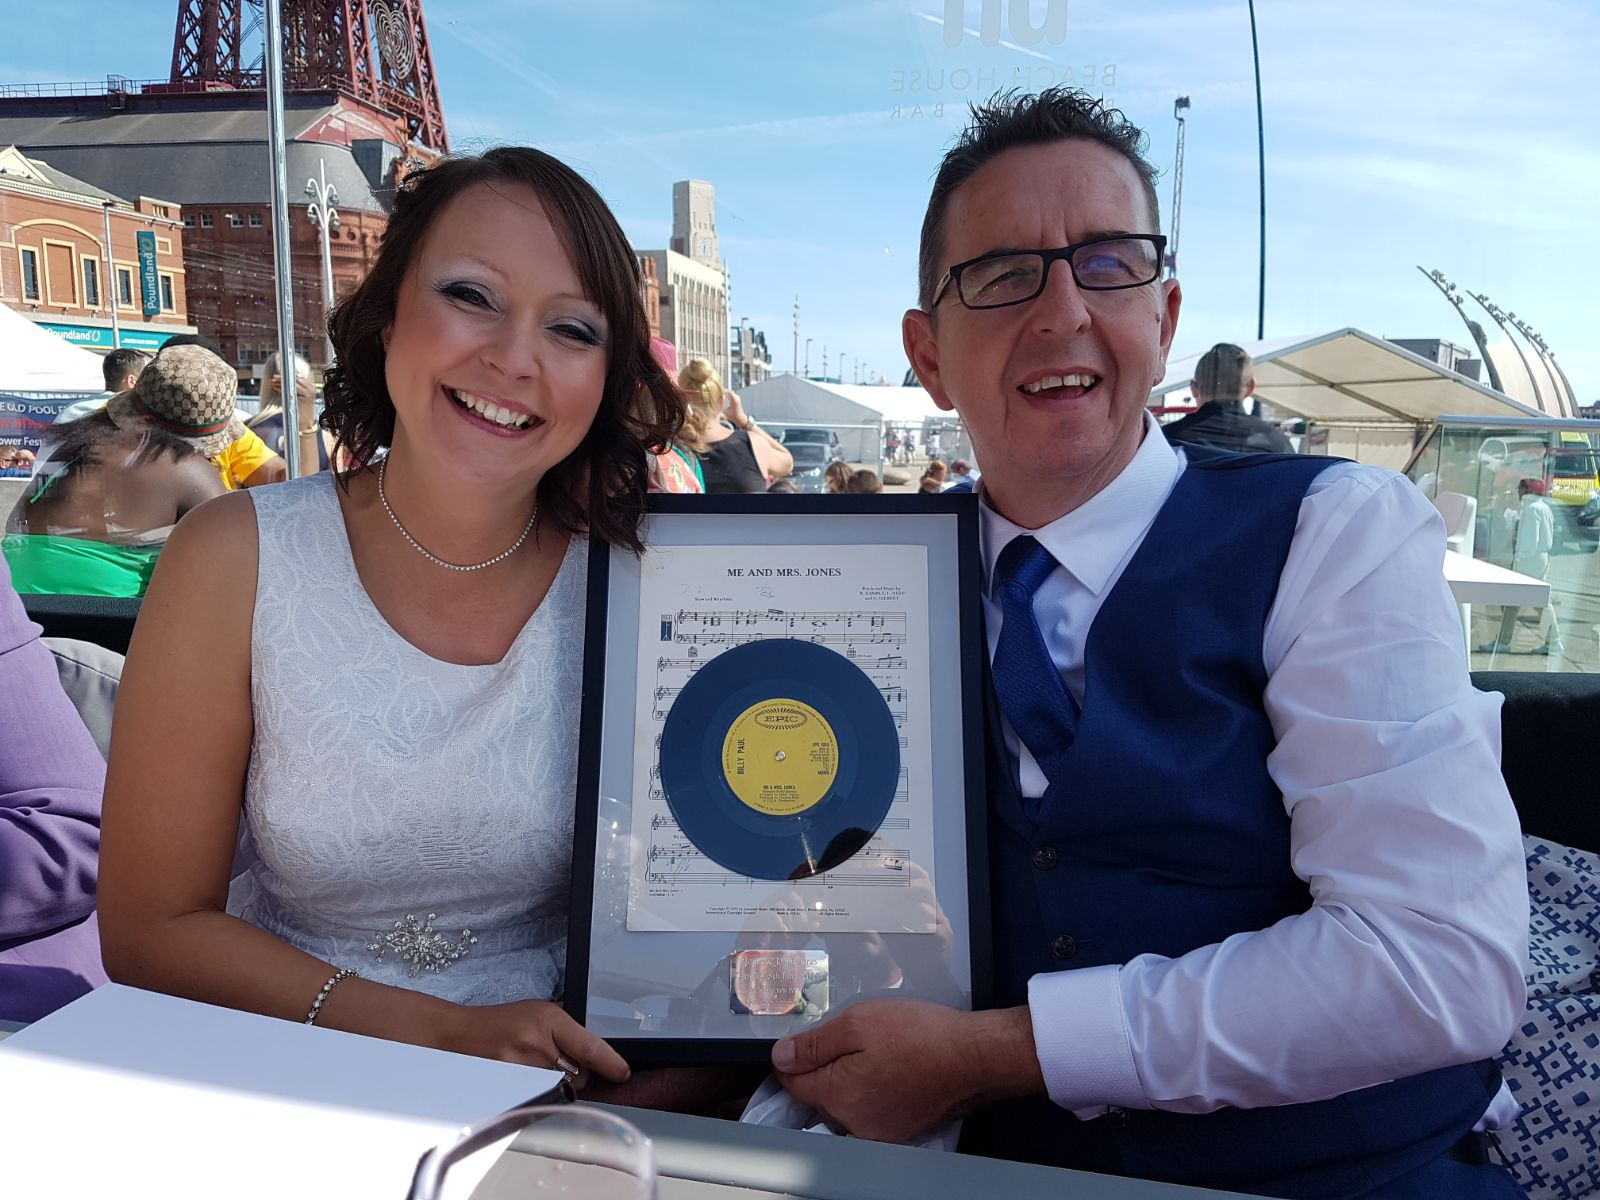 Local Couple Marry in Blackpool